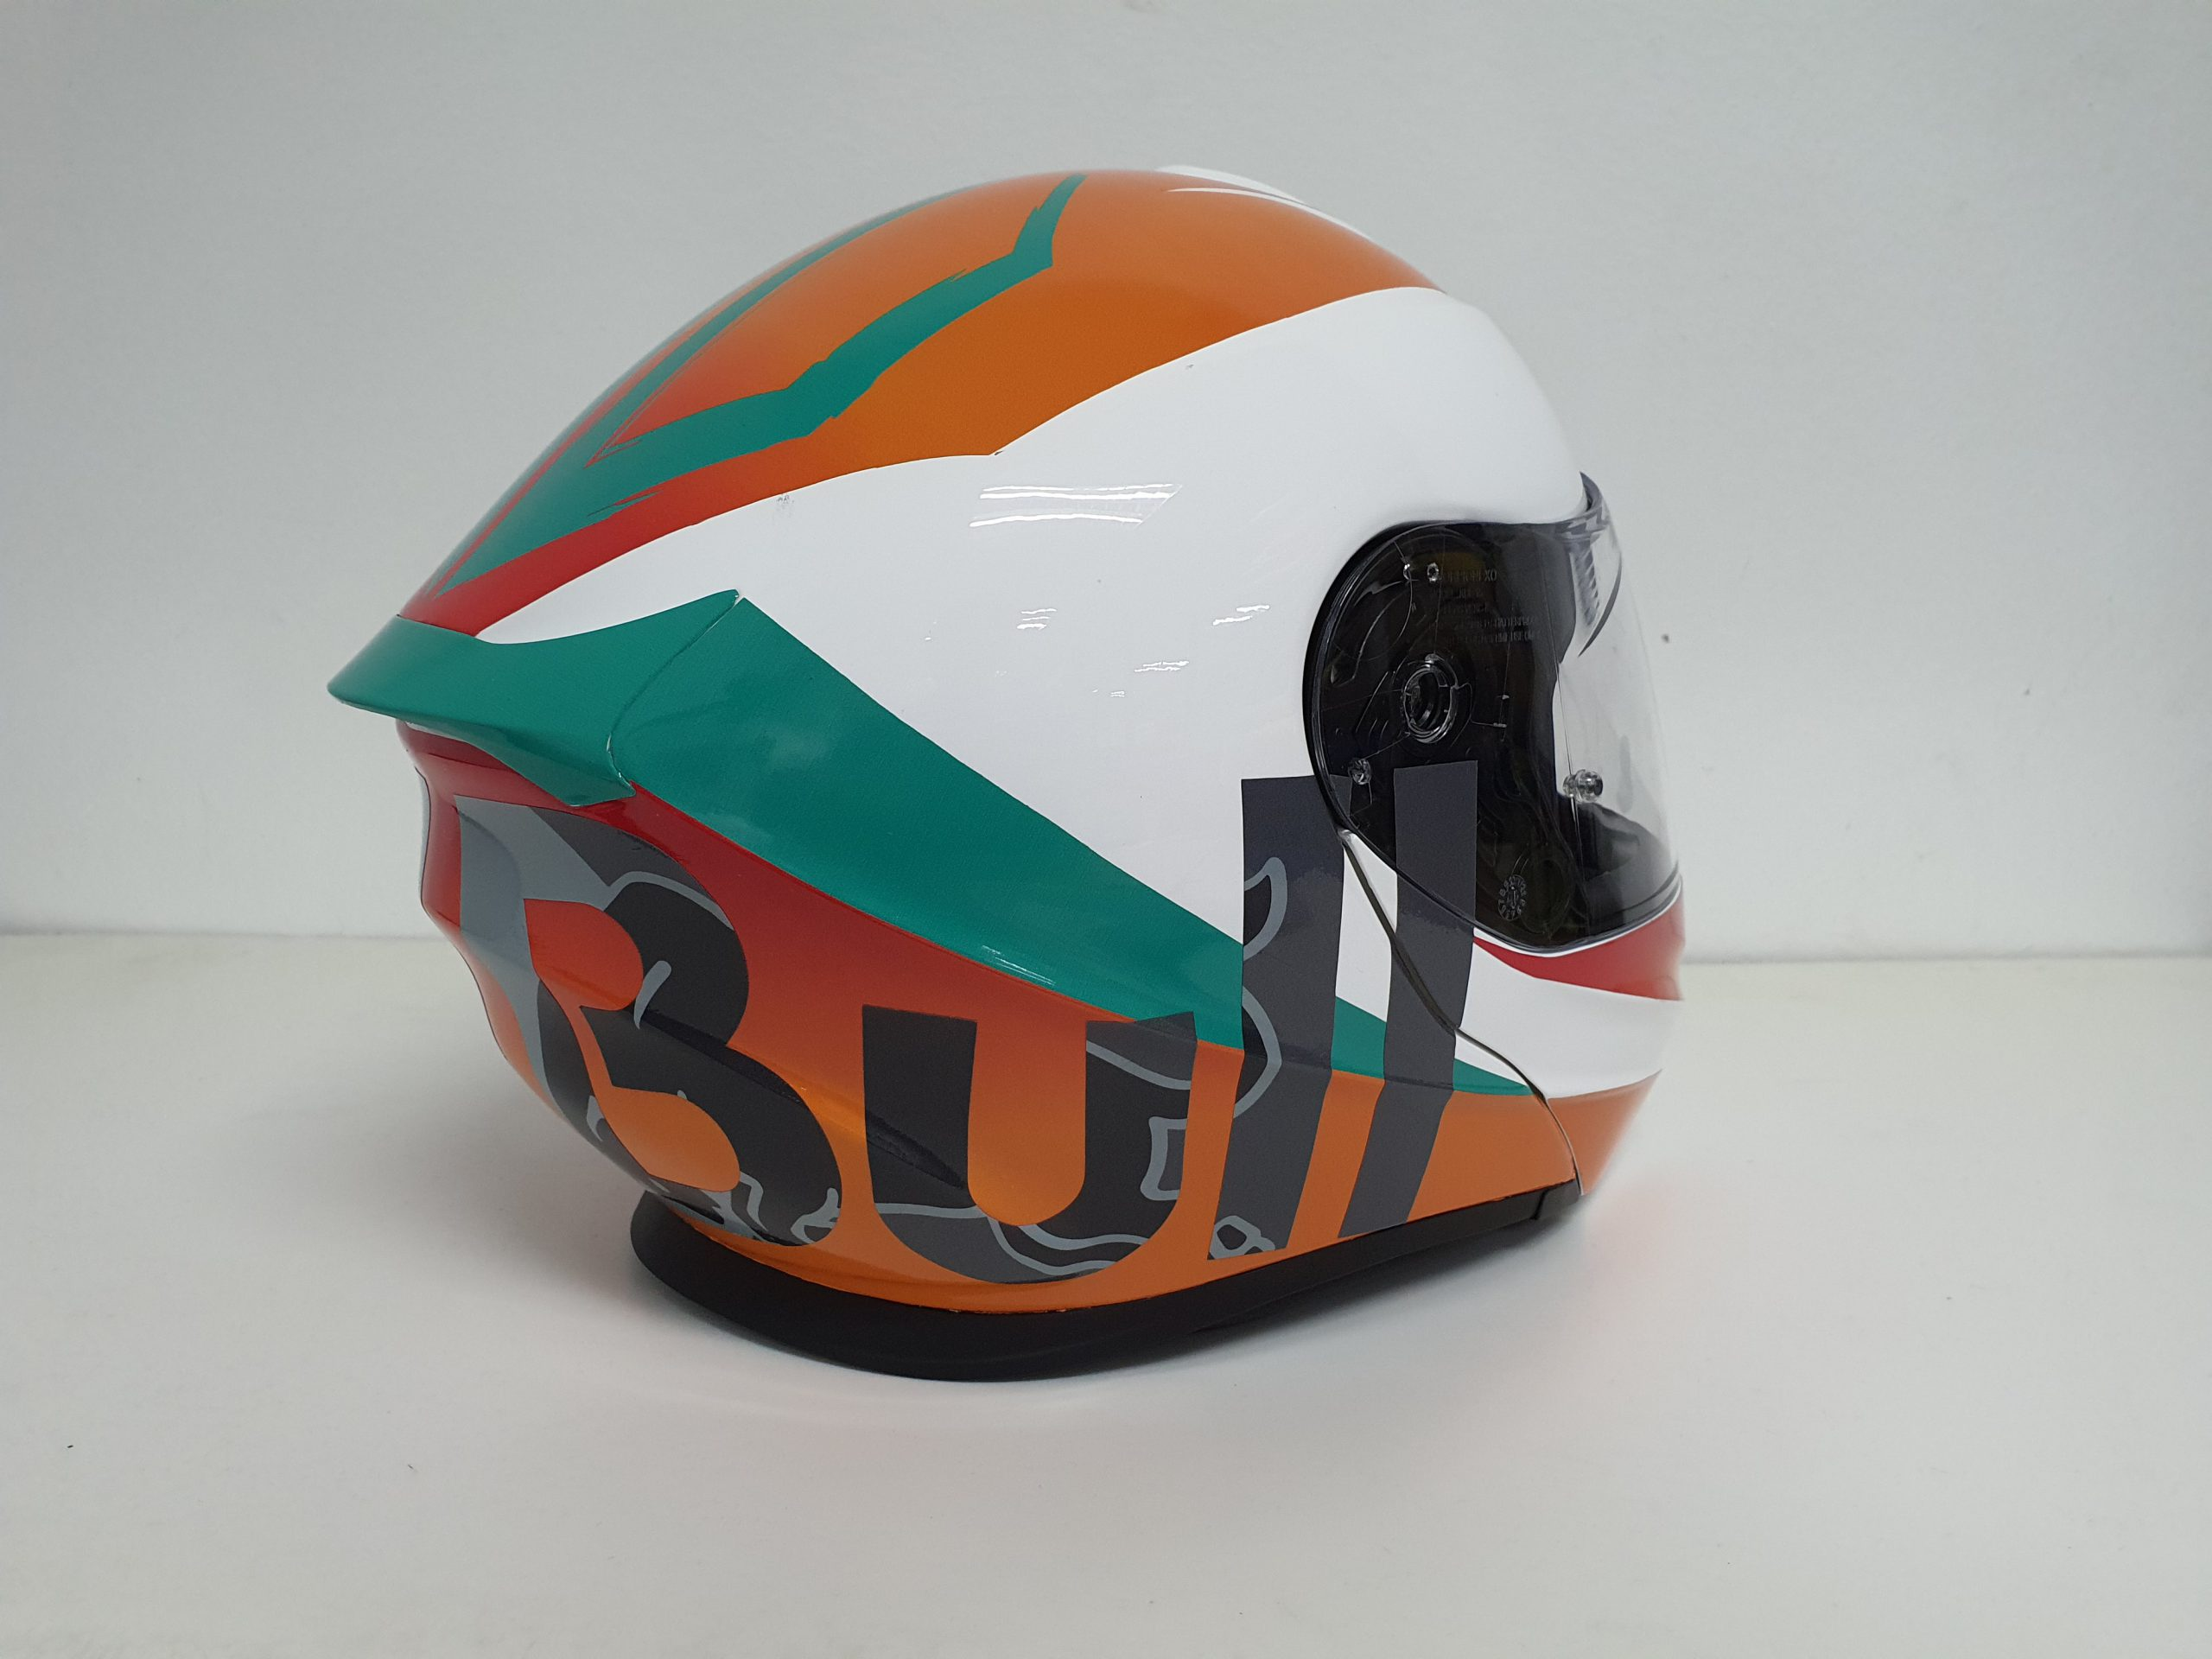 """The Right Profile of the Scorpion Helmet shows the word """"Bull"""""""